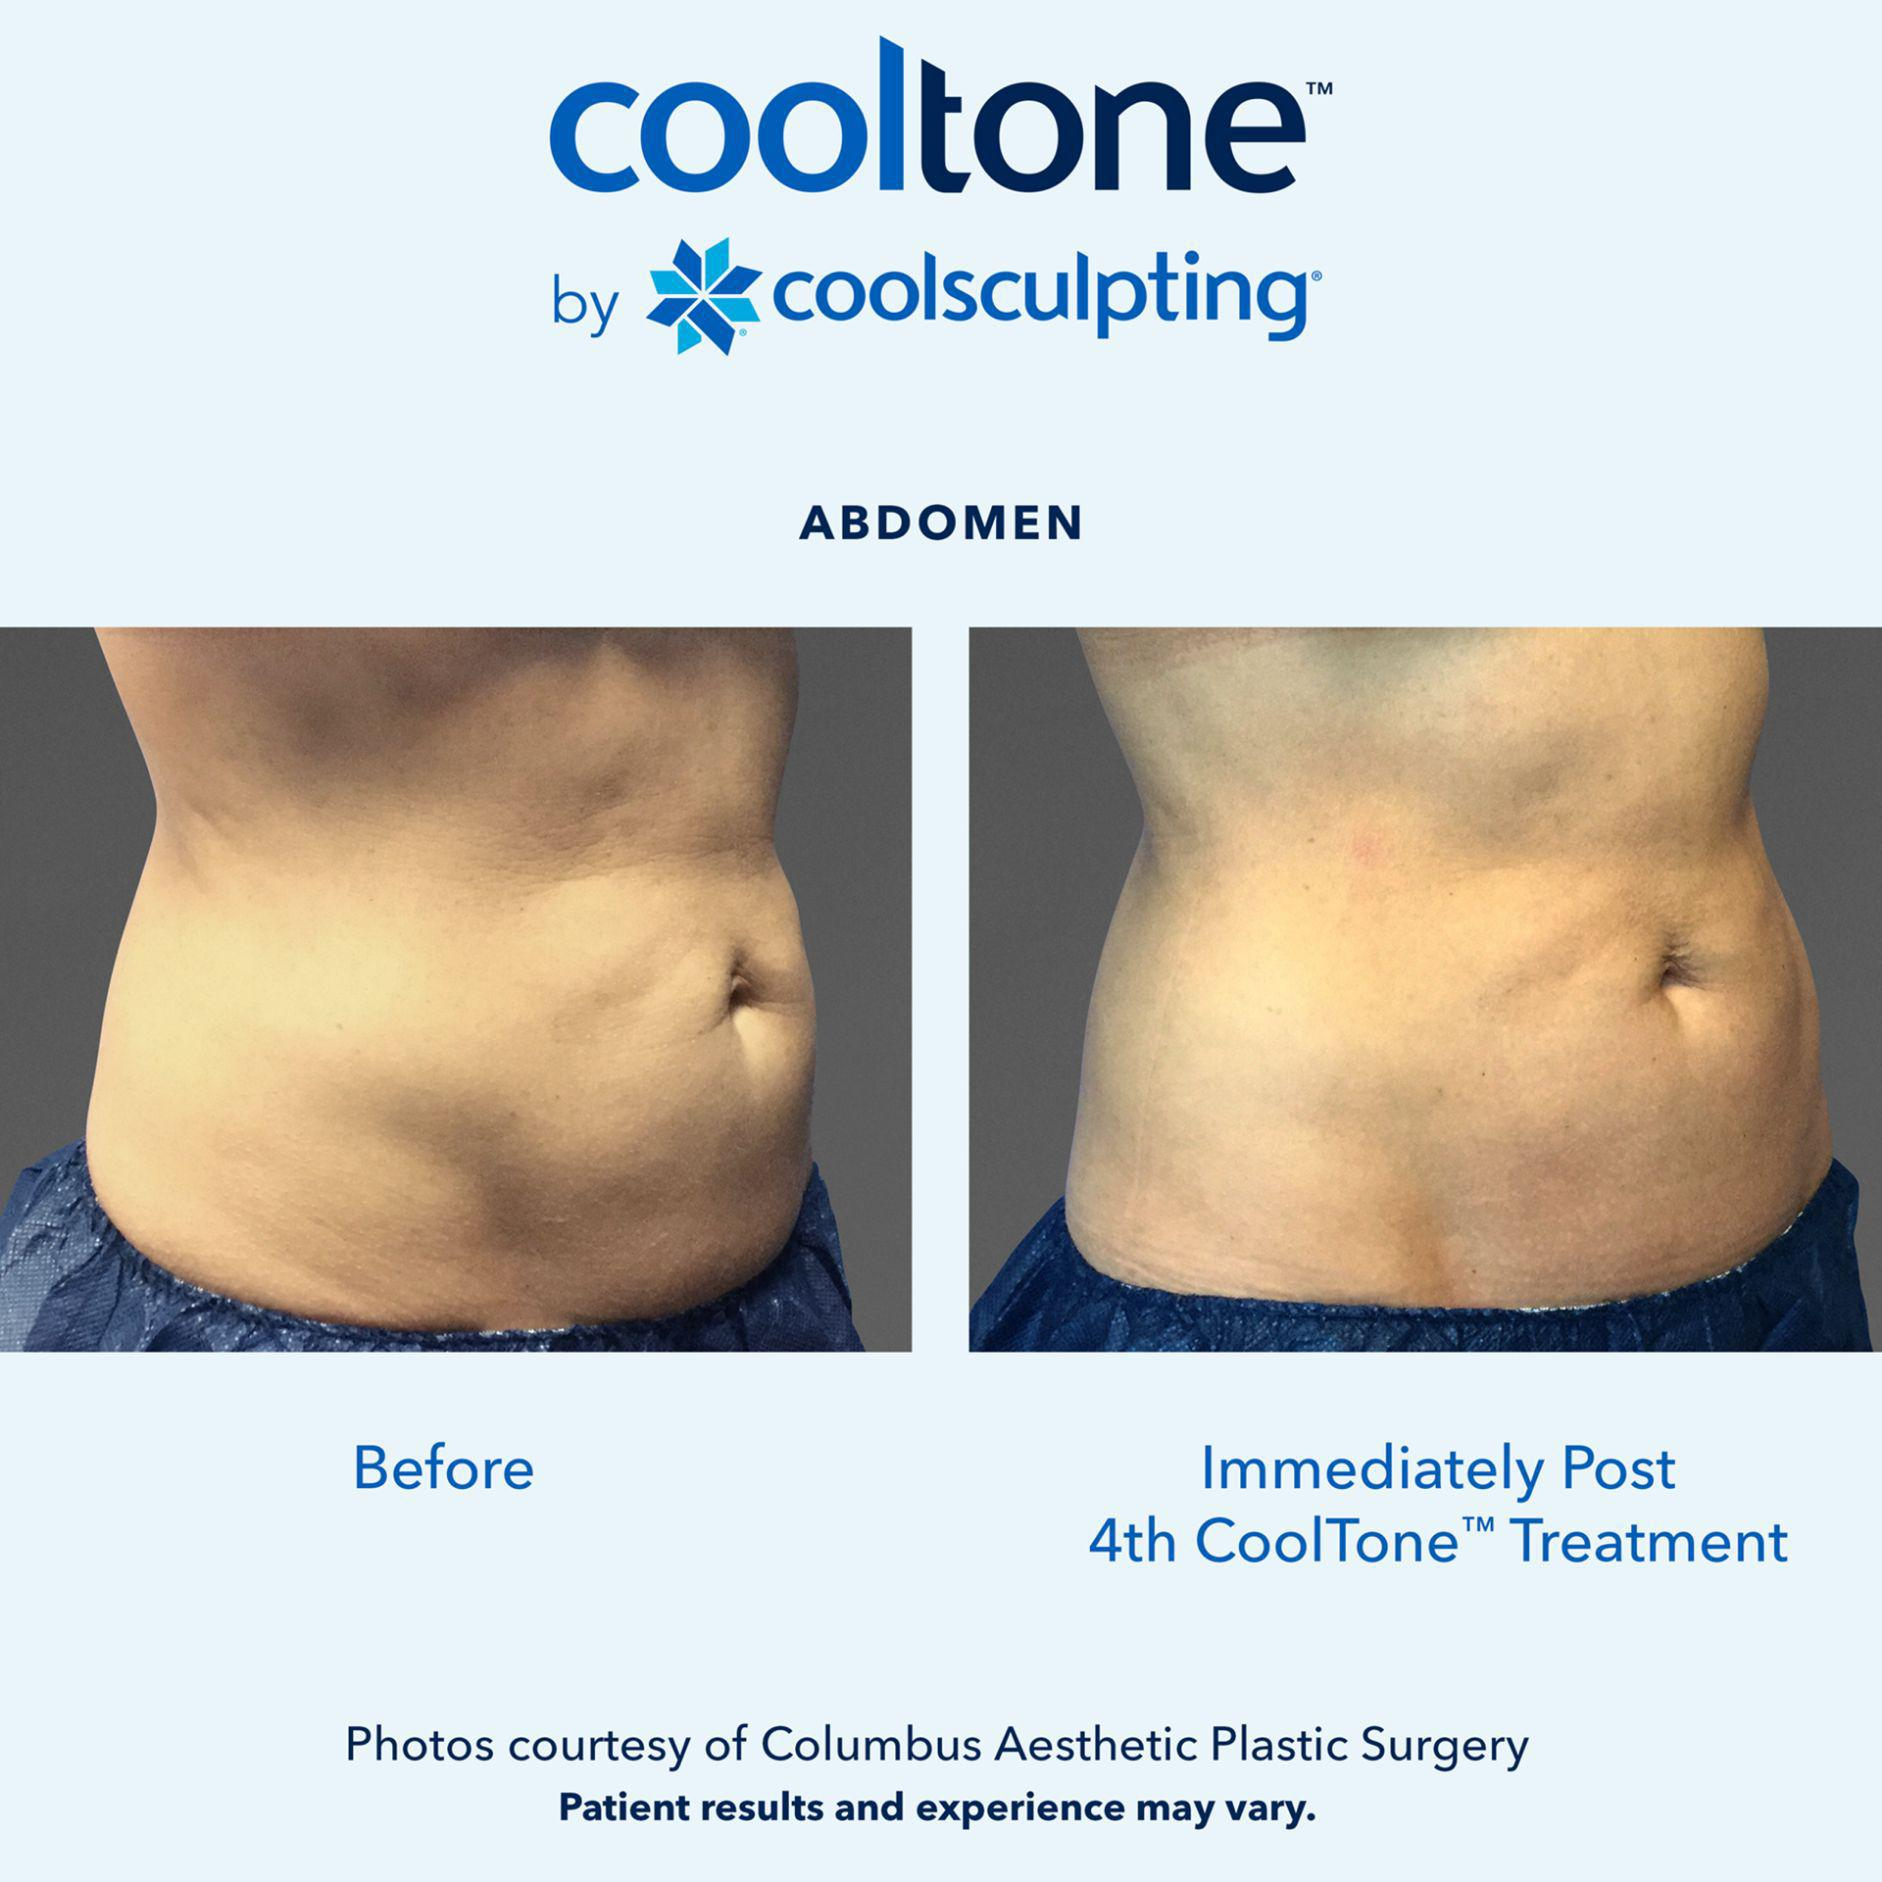 Gallery image about CoolTone Before and After